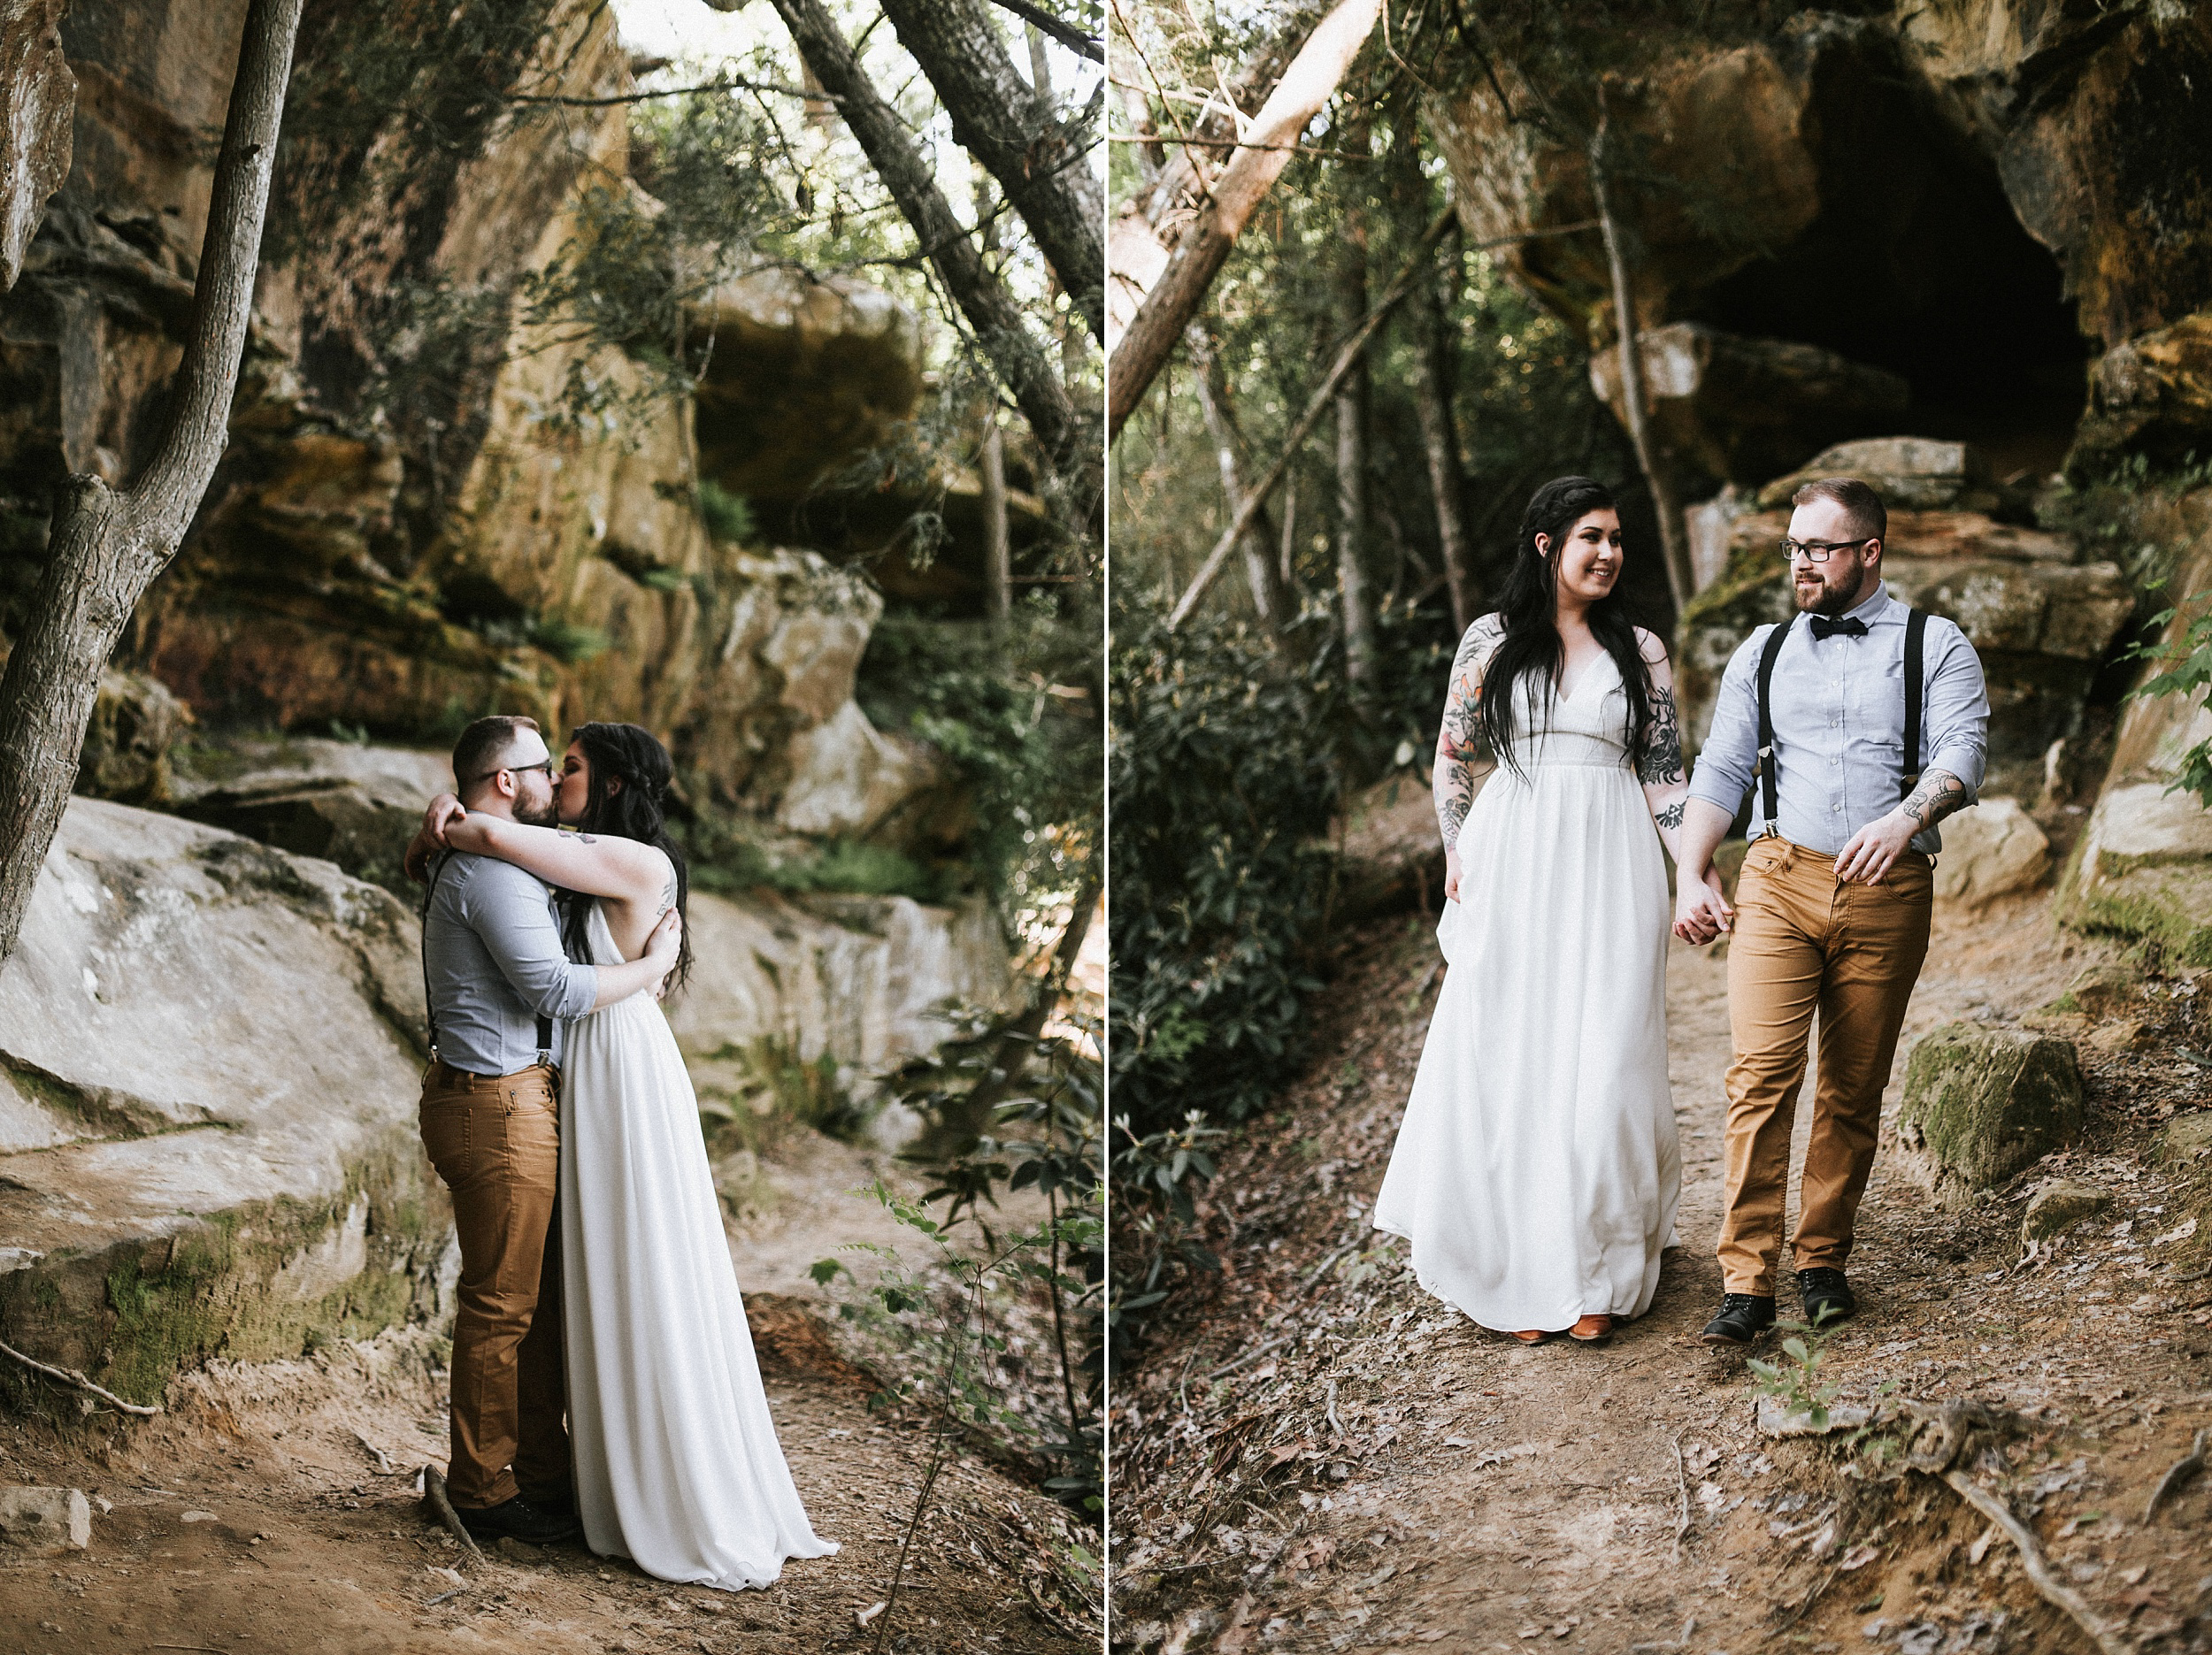 BROOKE TOWNSEND PHOTOGRAPHY - CINCINNATI ELOPEMENT PHOTOGRAPHER-6.jpg